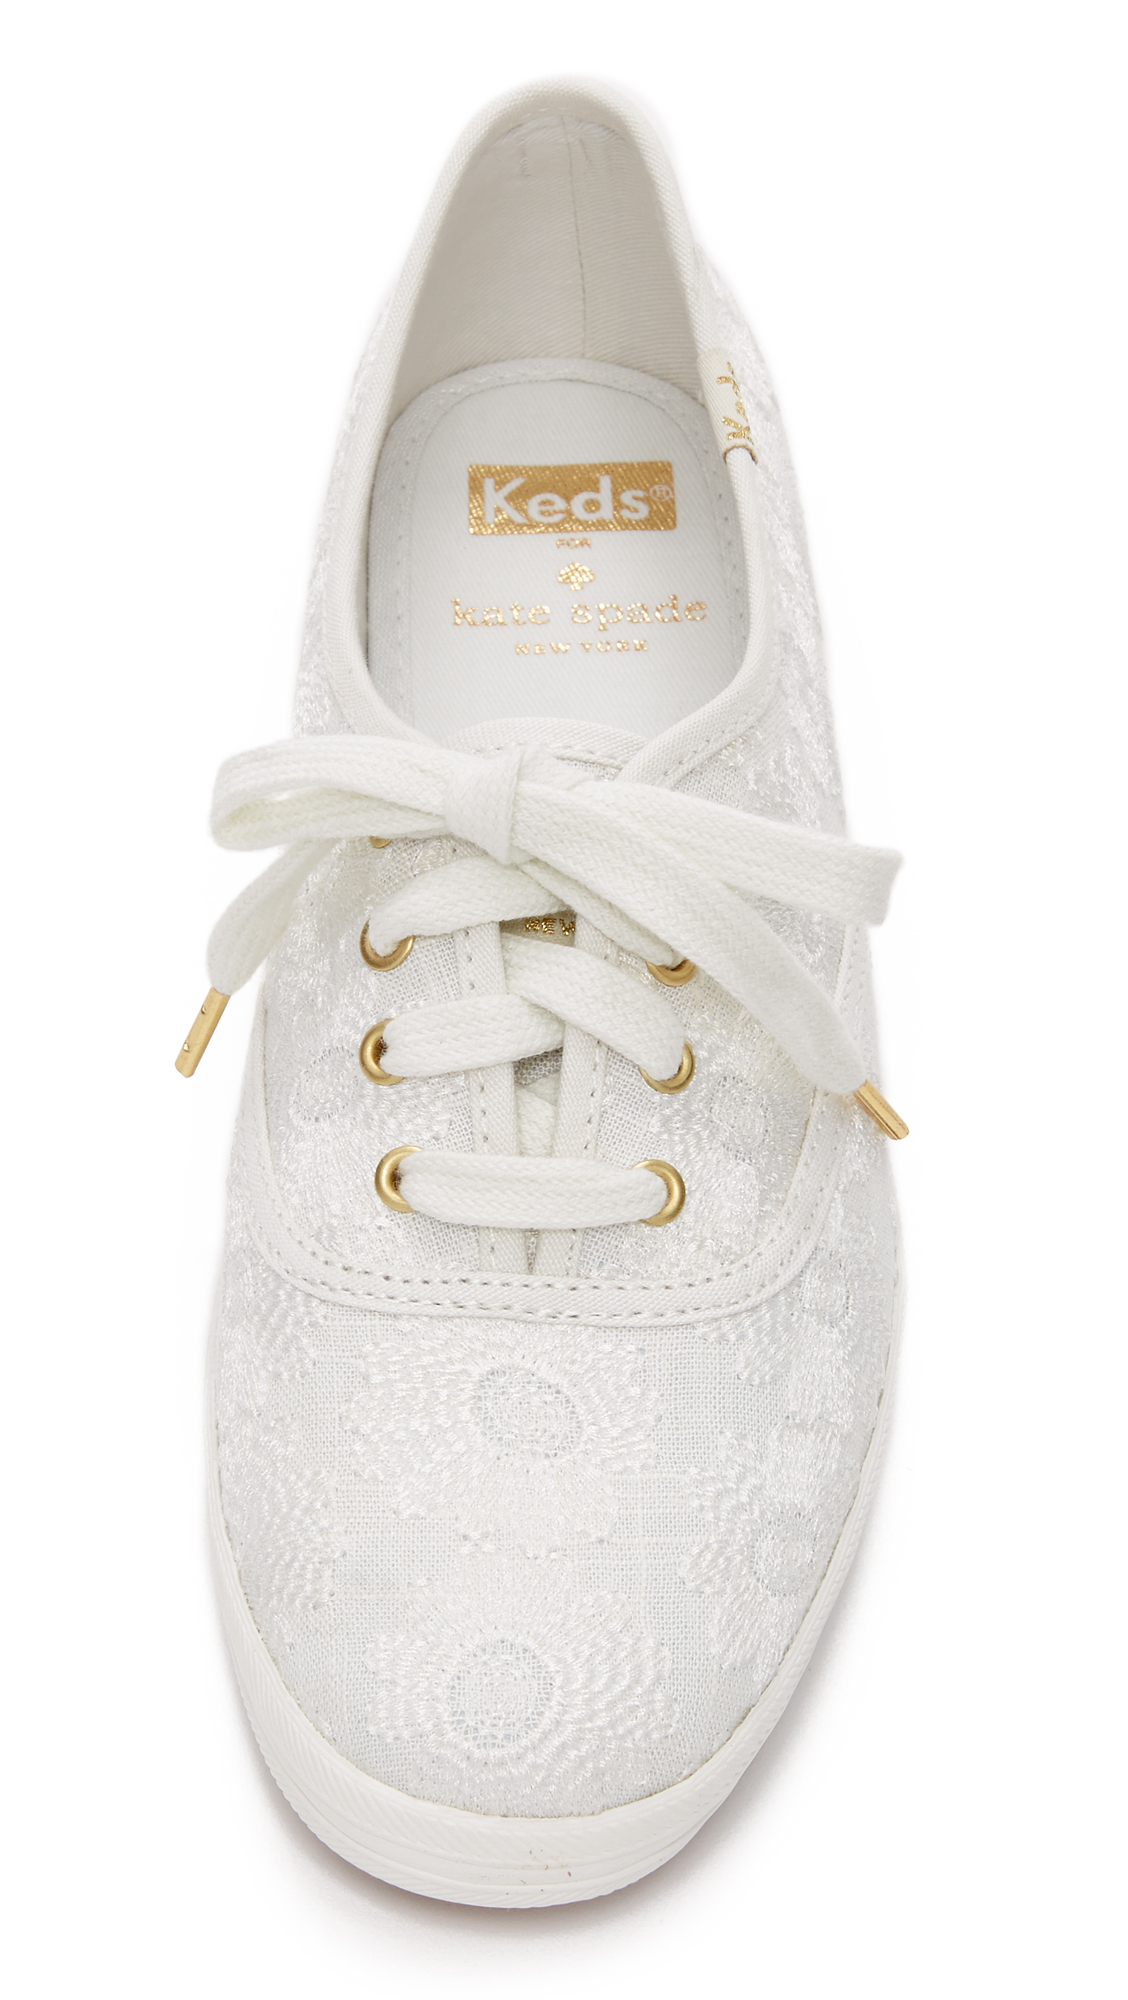 6f6cf1eb0ee0 Kate Spade New York Keds for Kate Spade Kick Embroidered Sneakers ...